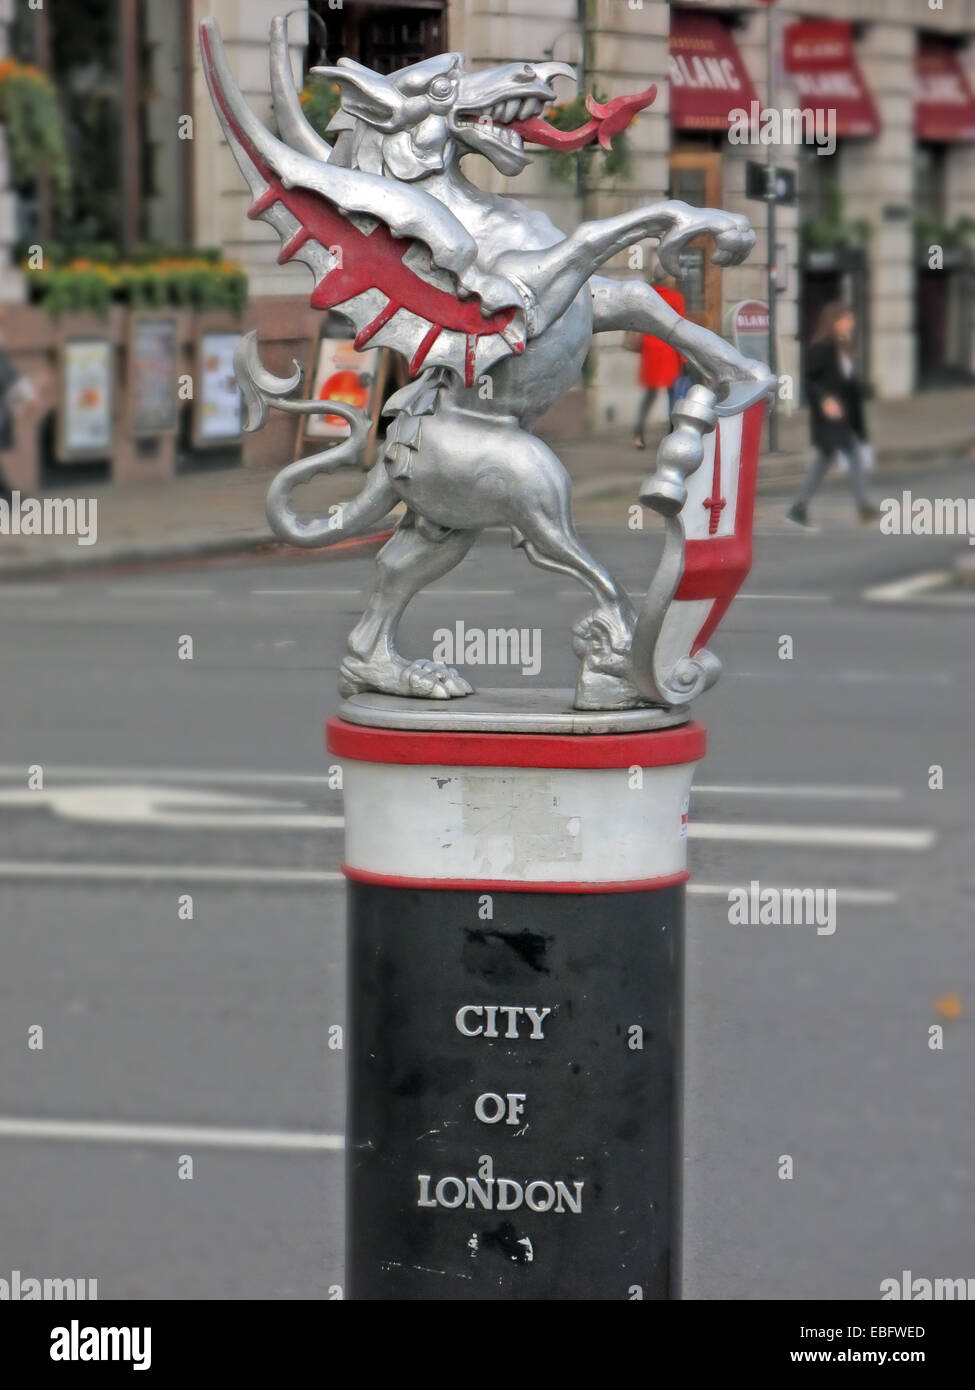 Gryphon,tower hill,attraction,britain,british,capital,city,color,colour,creature,destination,england,english,europe,european,feature,griffin,gryphon,kingdom,lion,location,london,metropolitan,place,shield,sightseeing,tour,tourism,tourist,travel,uk,united,urban,visiting,gotonysmith,winged,world,red,white,symbol,figure,mincing lane,mincing ln,shield,protecting,protection,guard,guarding,Buy Pictures of,Buy Images Of